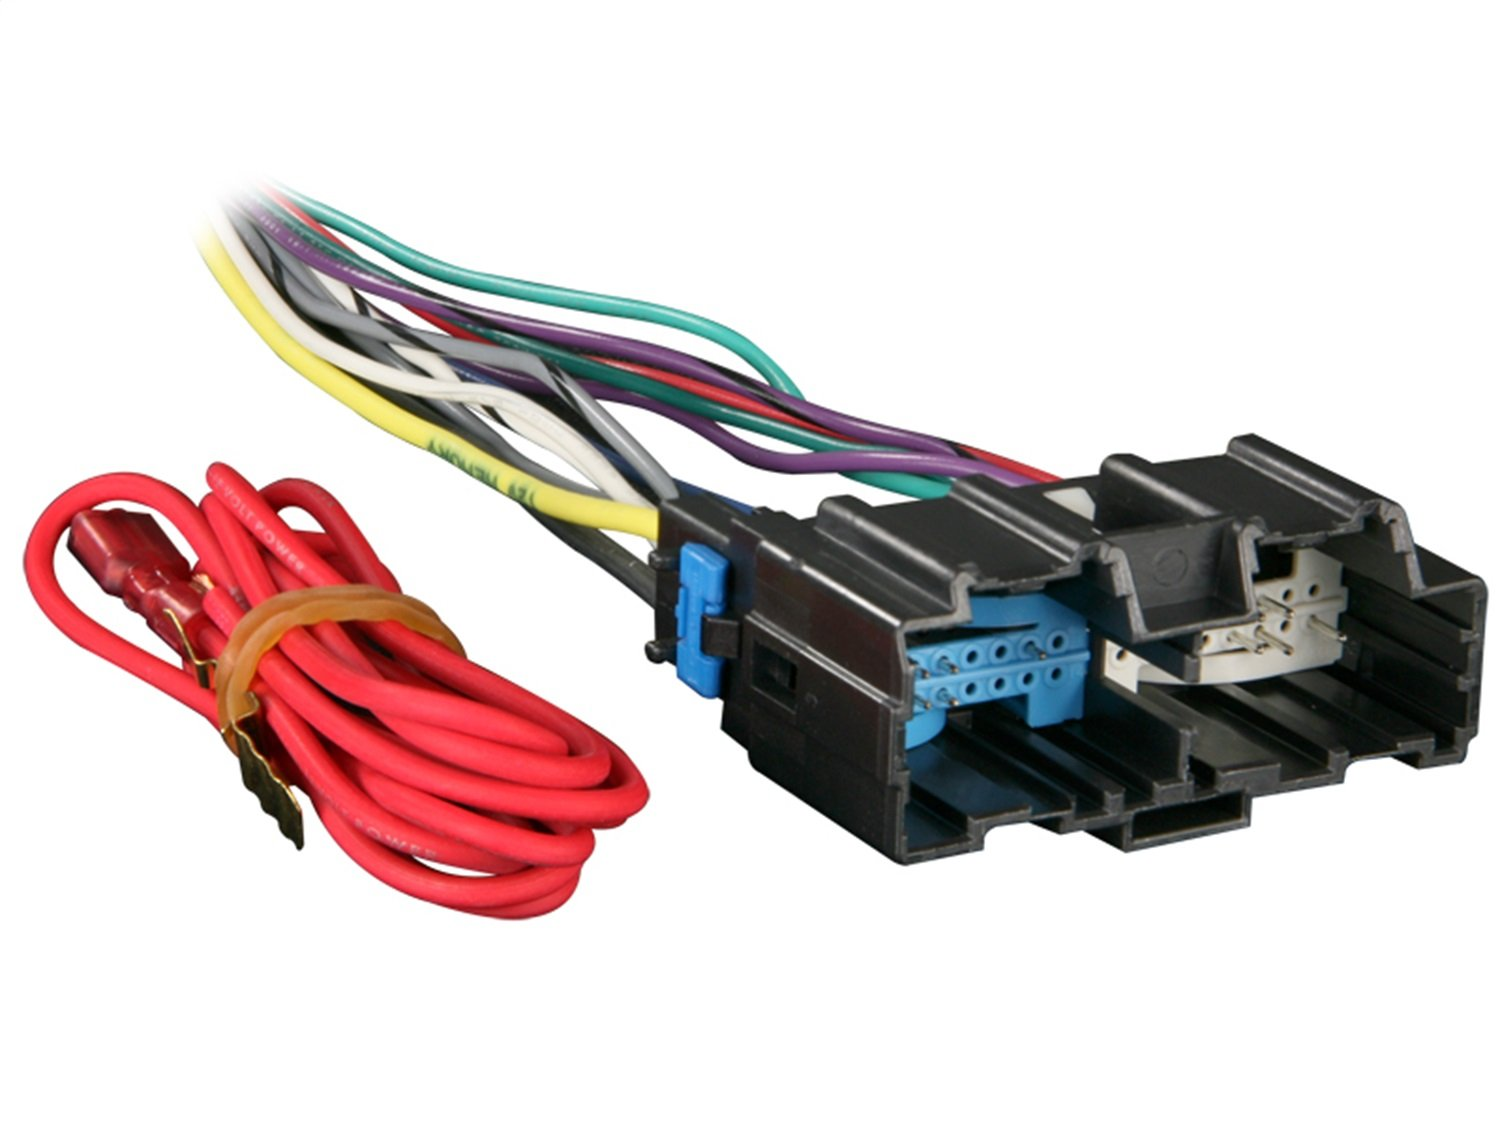 Metra 70 2105 Radio Wiring Harness For Impala Monte Jensen Silverado Carlo 2006 And Up Car Electronics